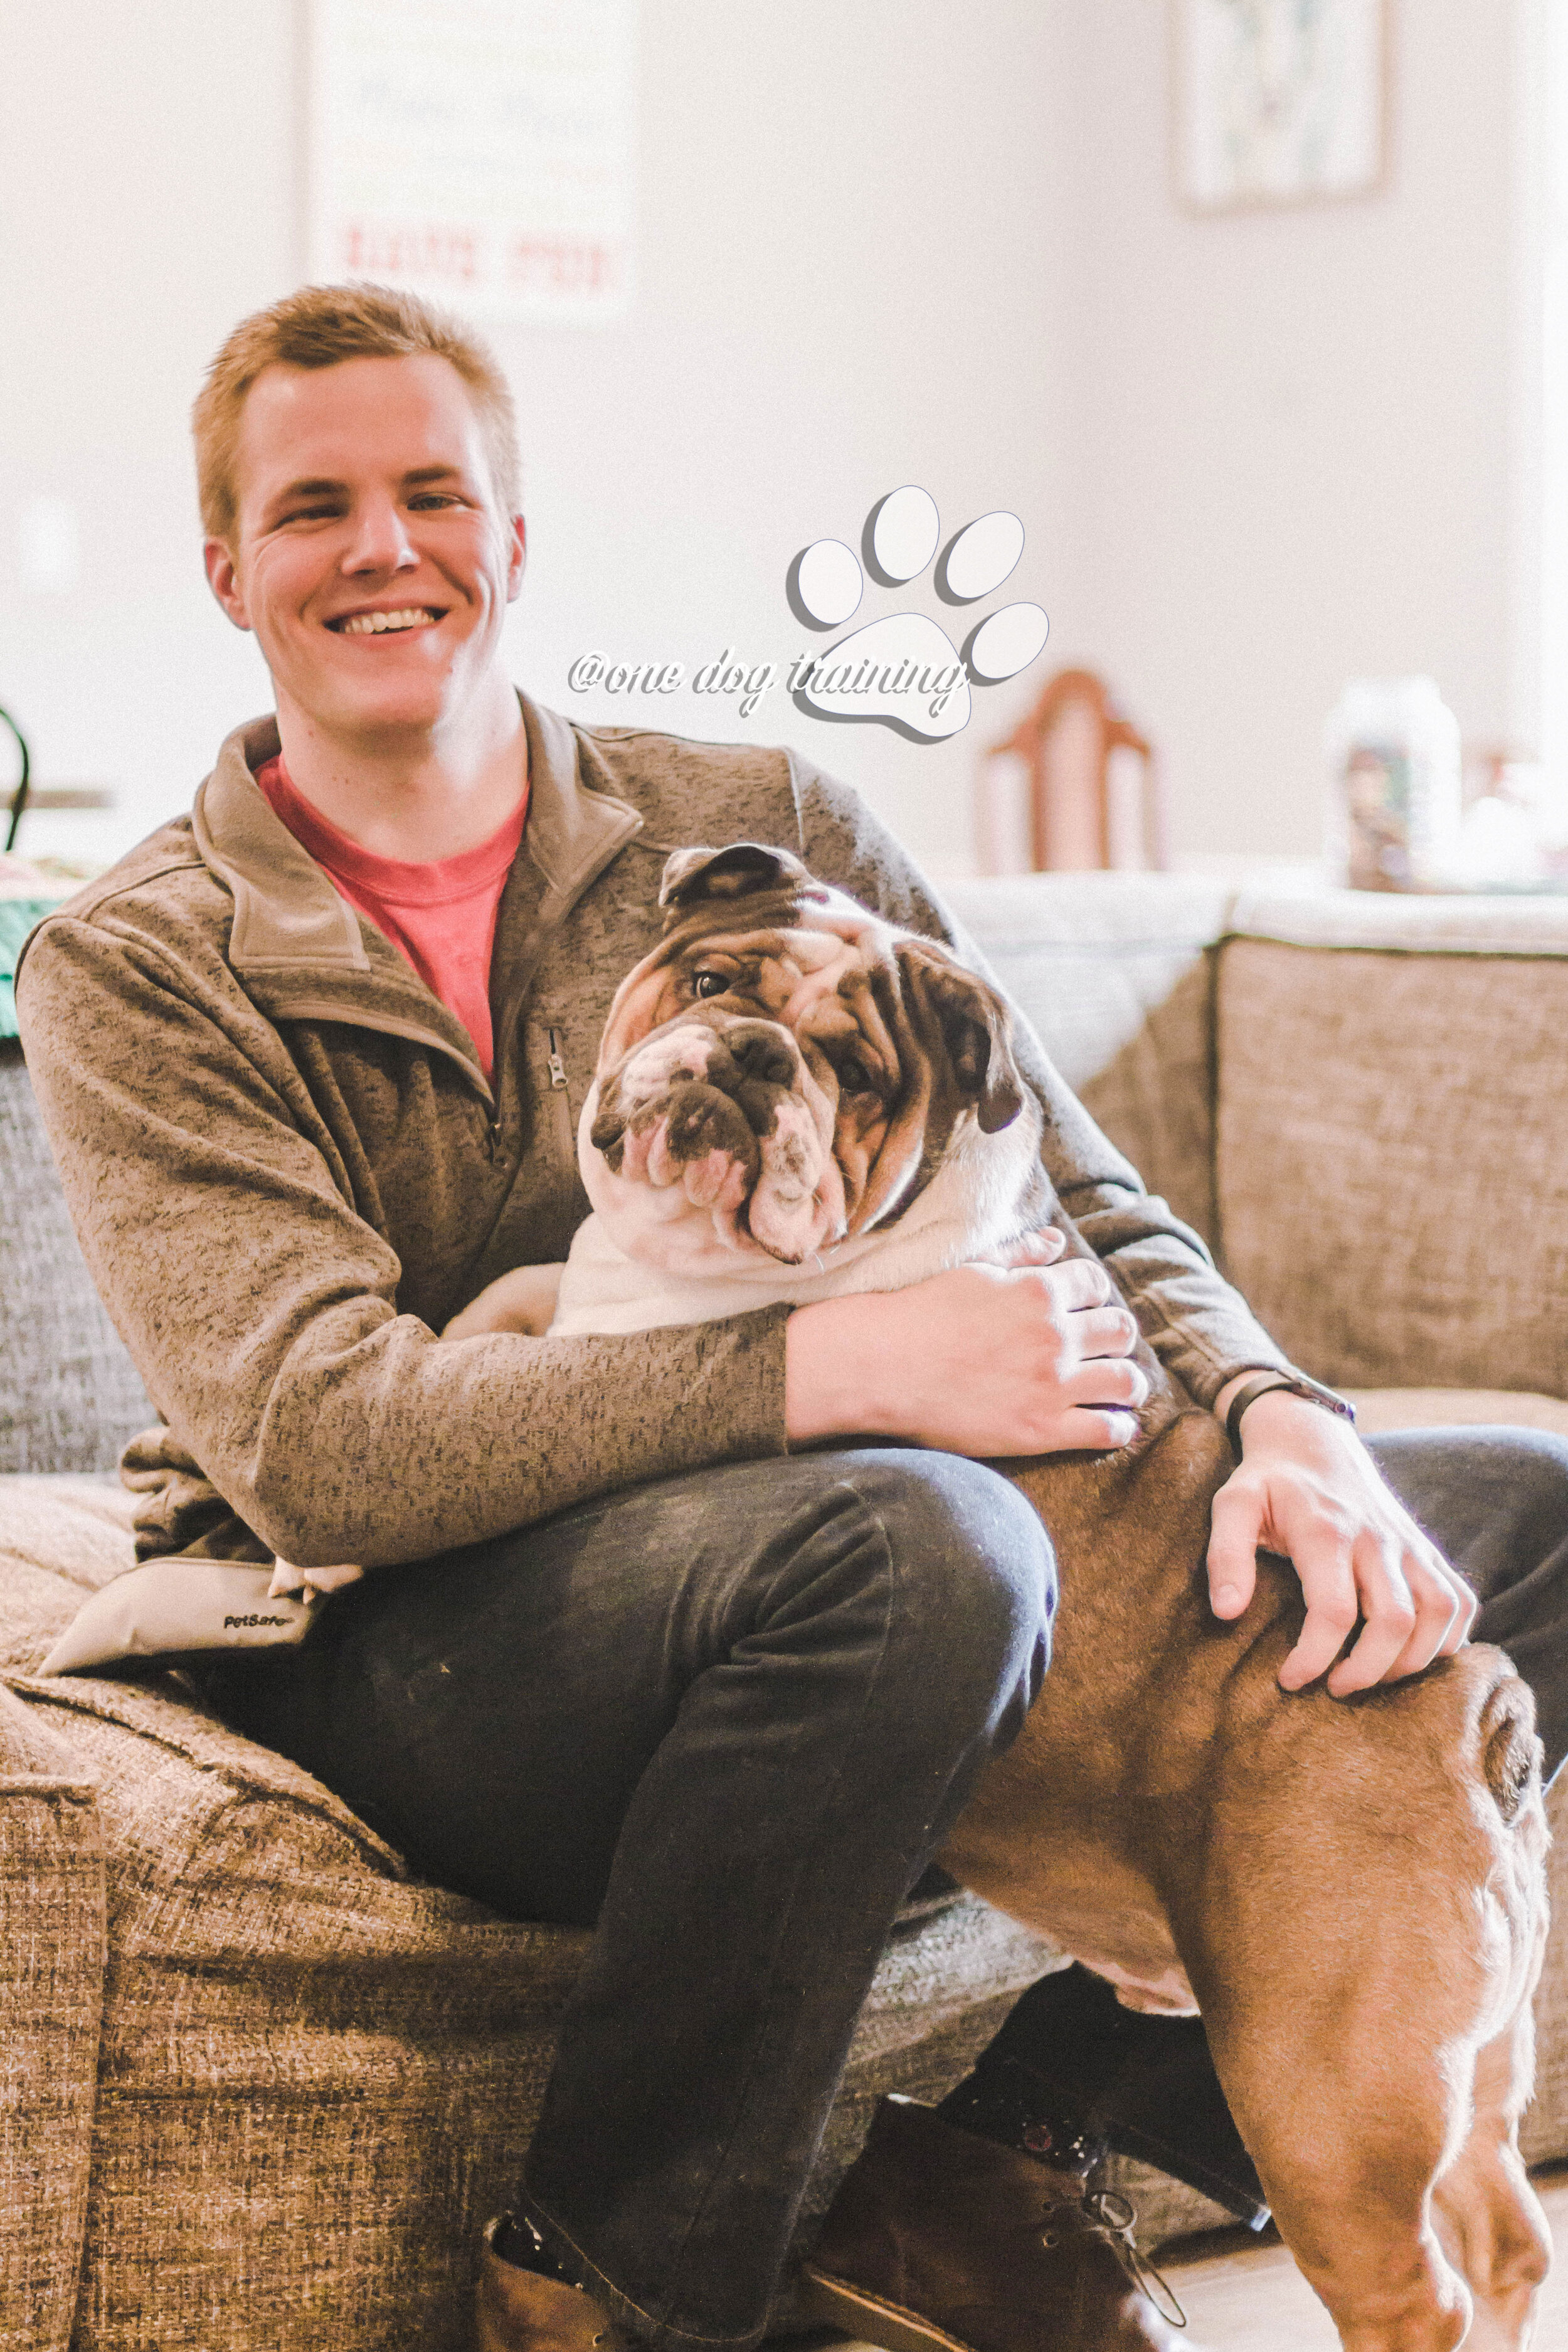 Corey McDaniel, Master Dog Trainer with Tuck